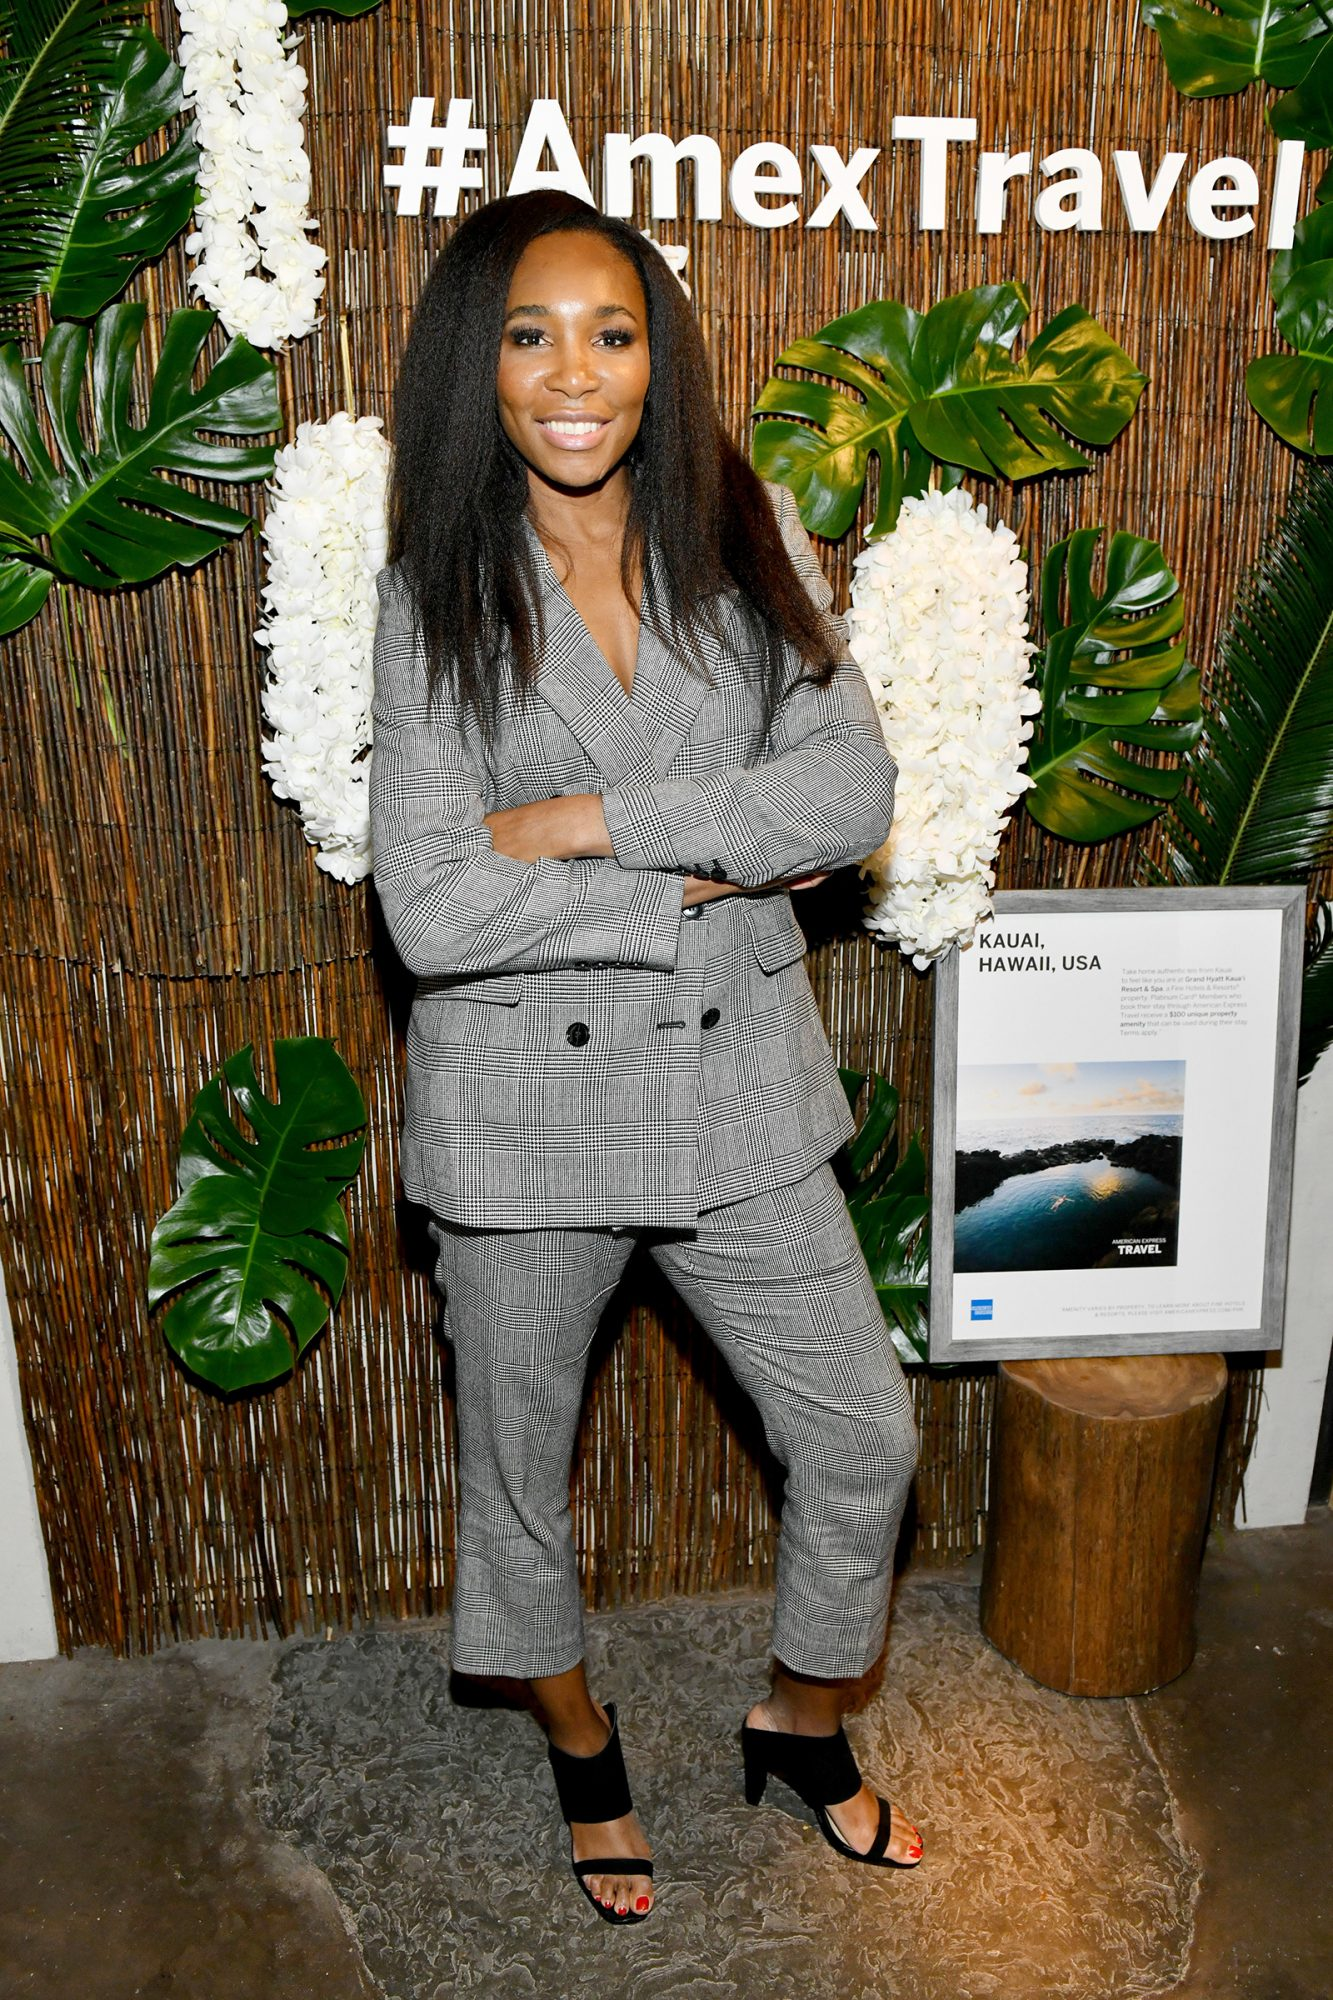 Venus Williams hosts an immersive experience presented by American Express Travel at the Greenwich Hotel on November 7, 2019, in New York City